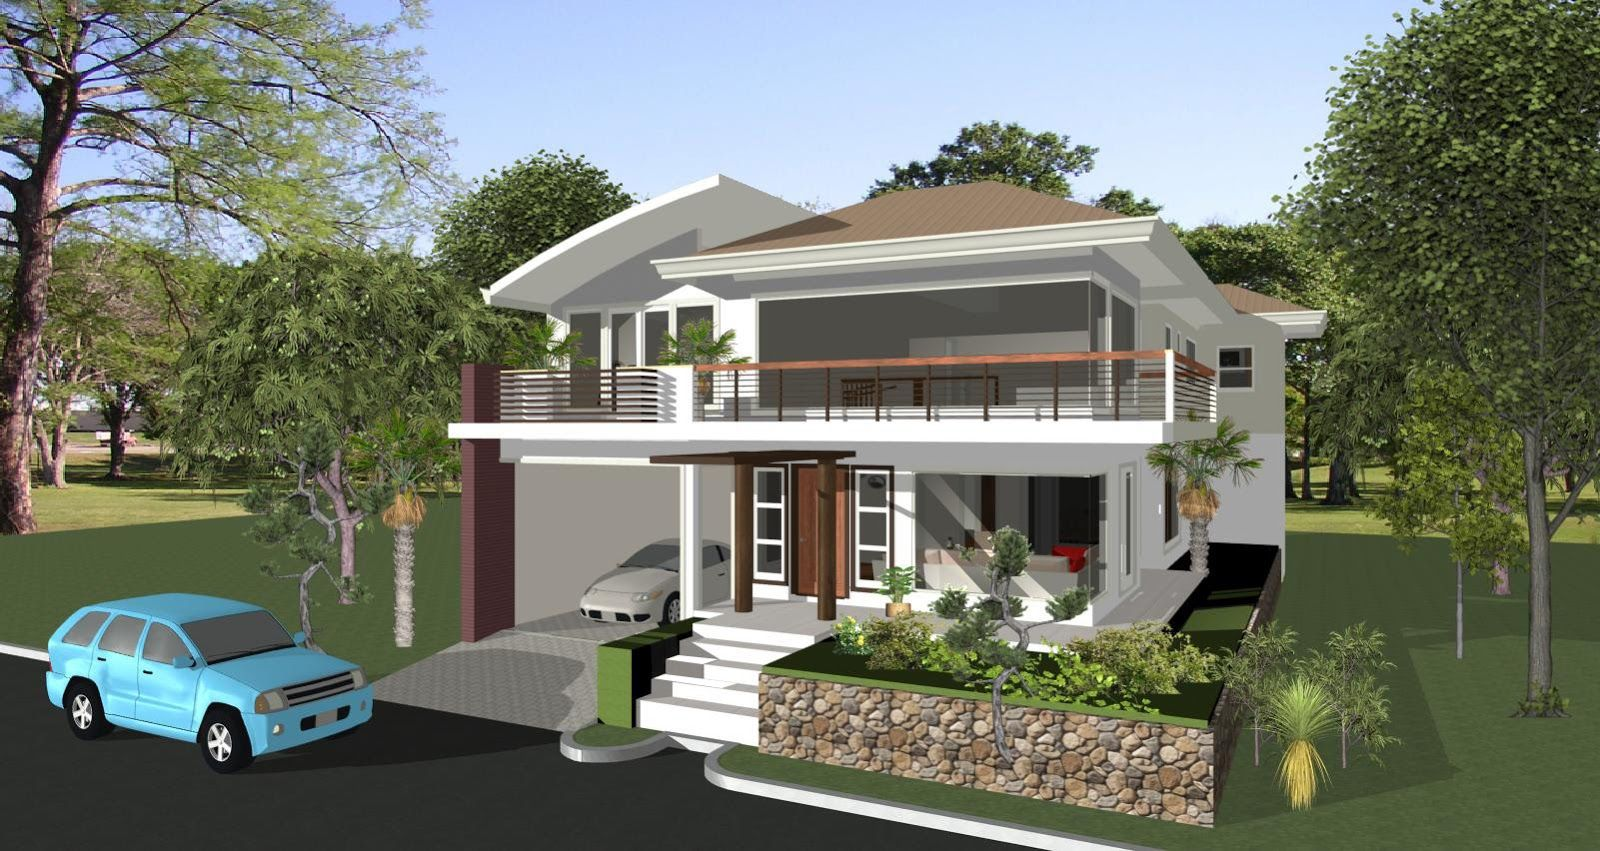 Ordinaire House Designs Iloilo Philippine Home Designs Philippines House Design  Simply Elegant Home Designs Unique Small House Plan